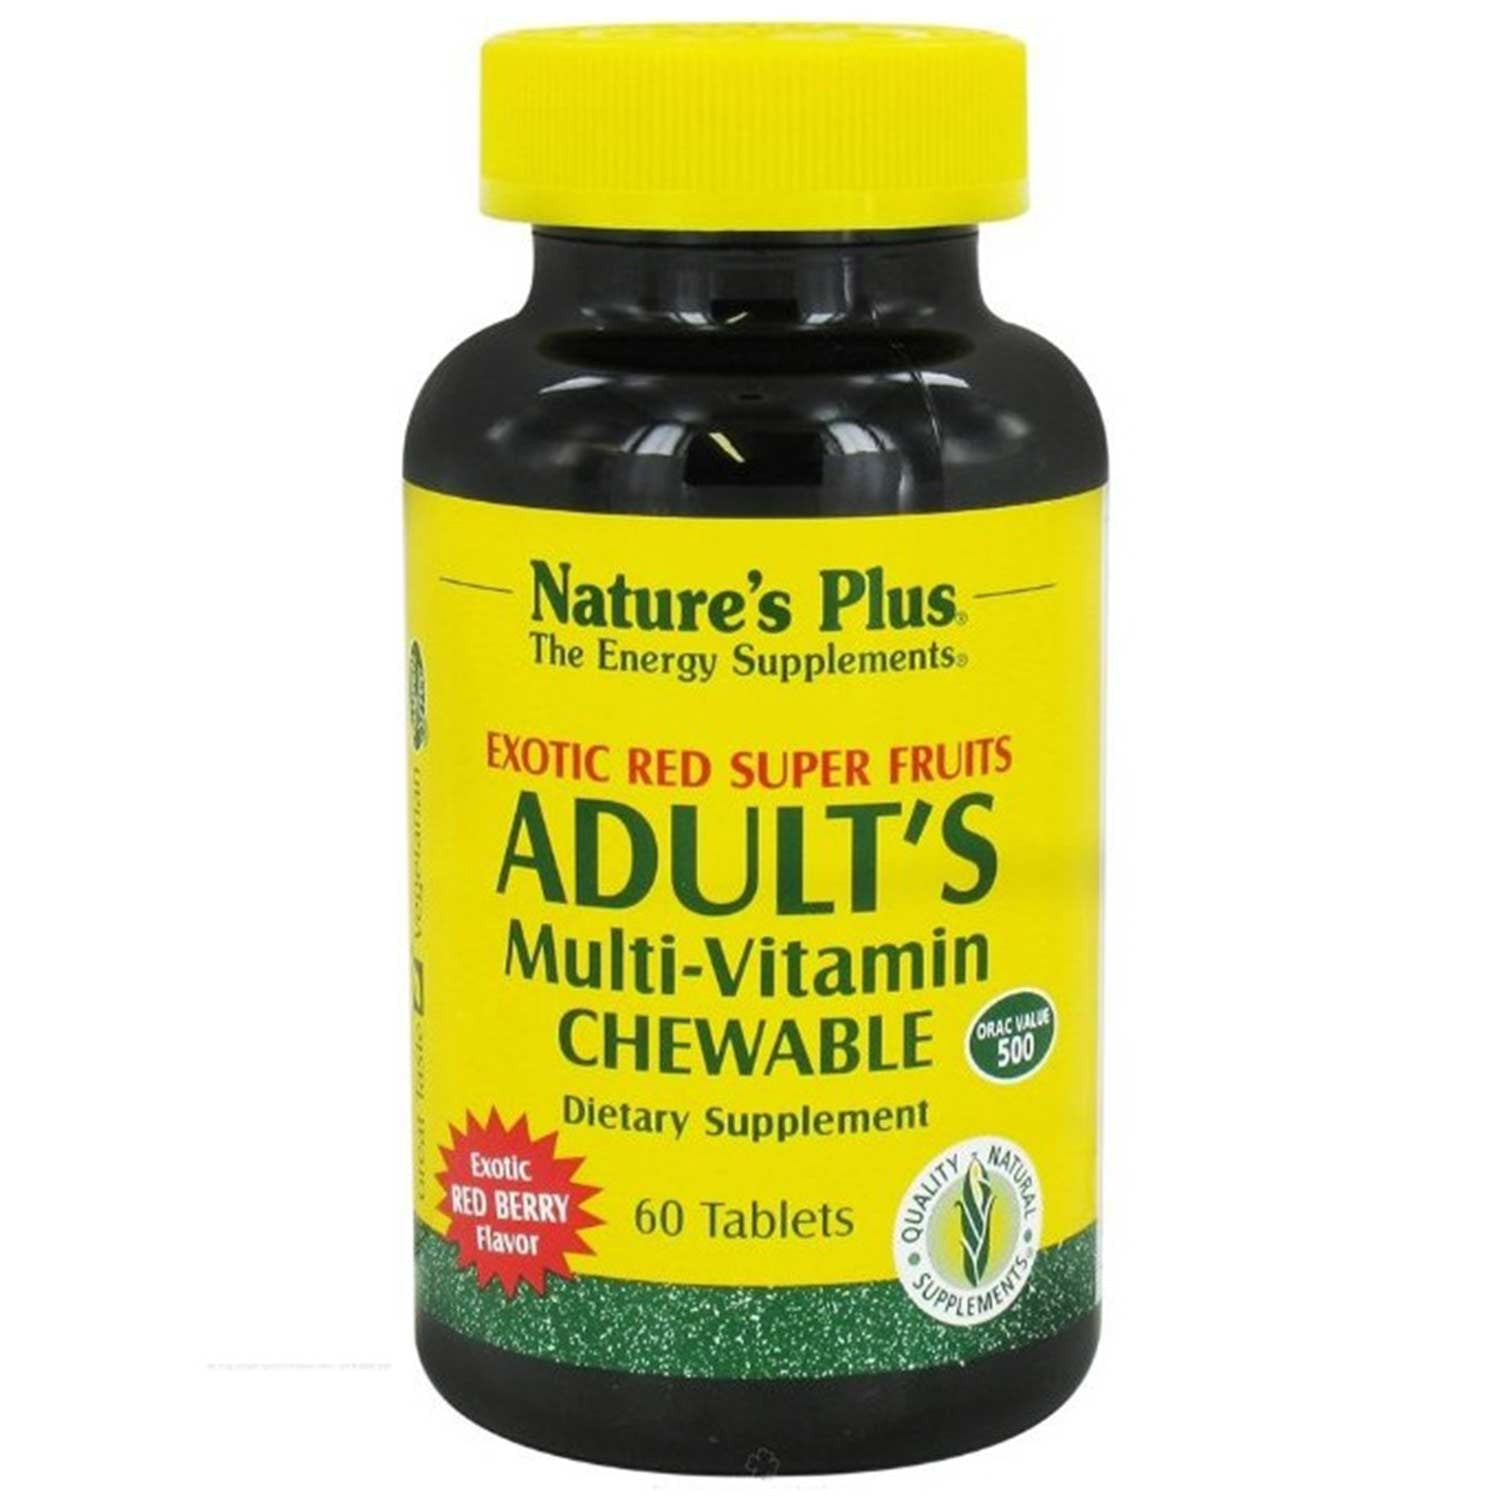 Natures Plus Adult's Multi-Vitamin Chewable - Exotic Red Super Fruits, 60 tabs.-NaturesWisdom